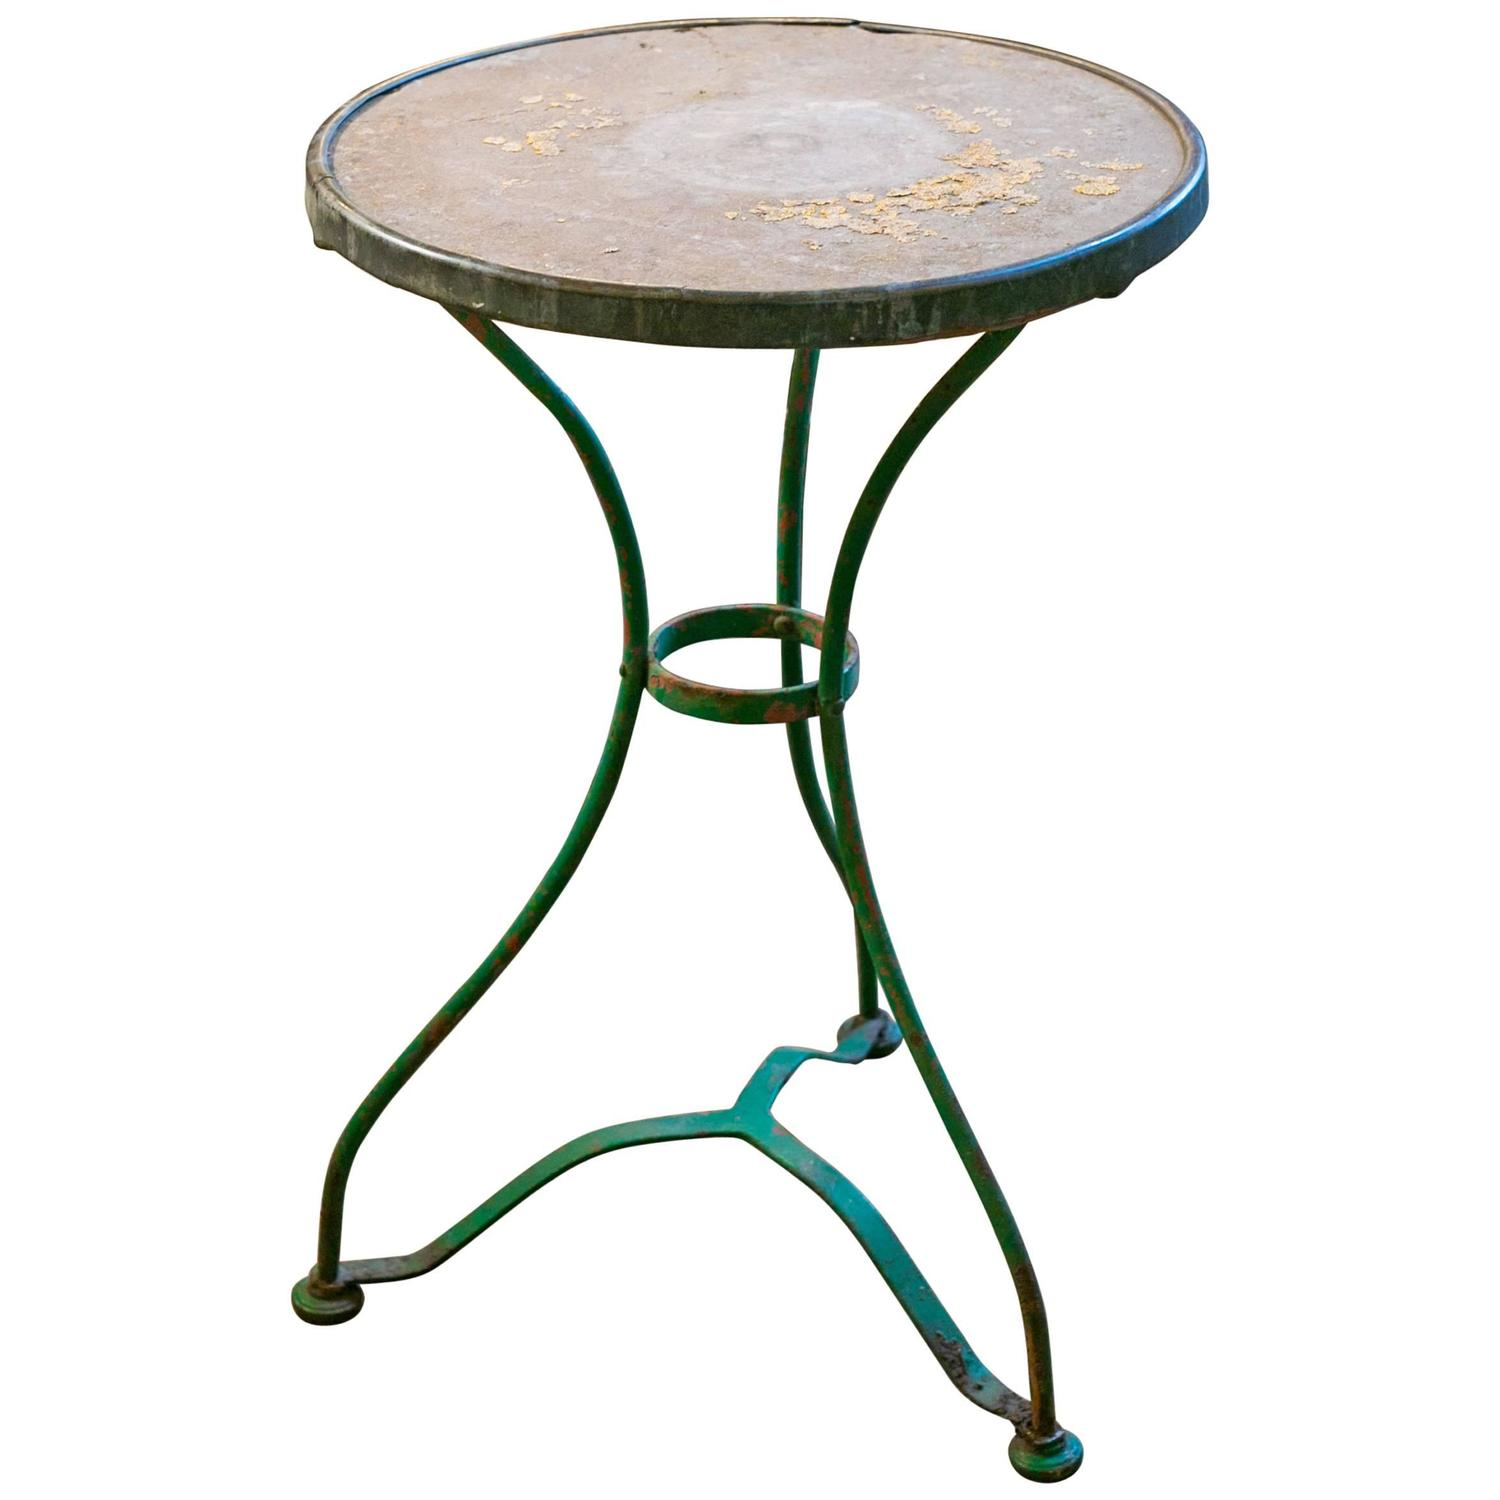 antique french bistro table and chairs childrens desk chair john lewis vintage iron with marble top for sale